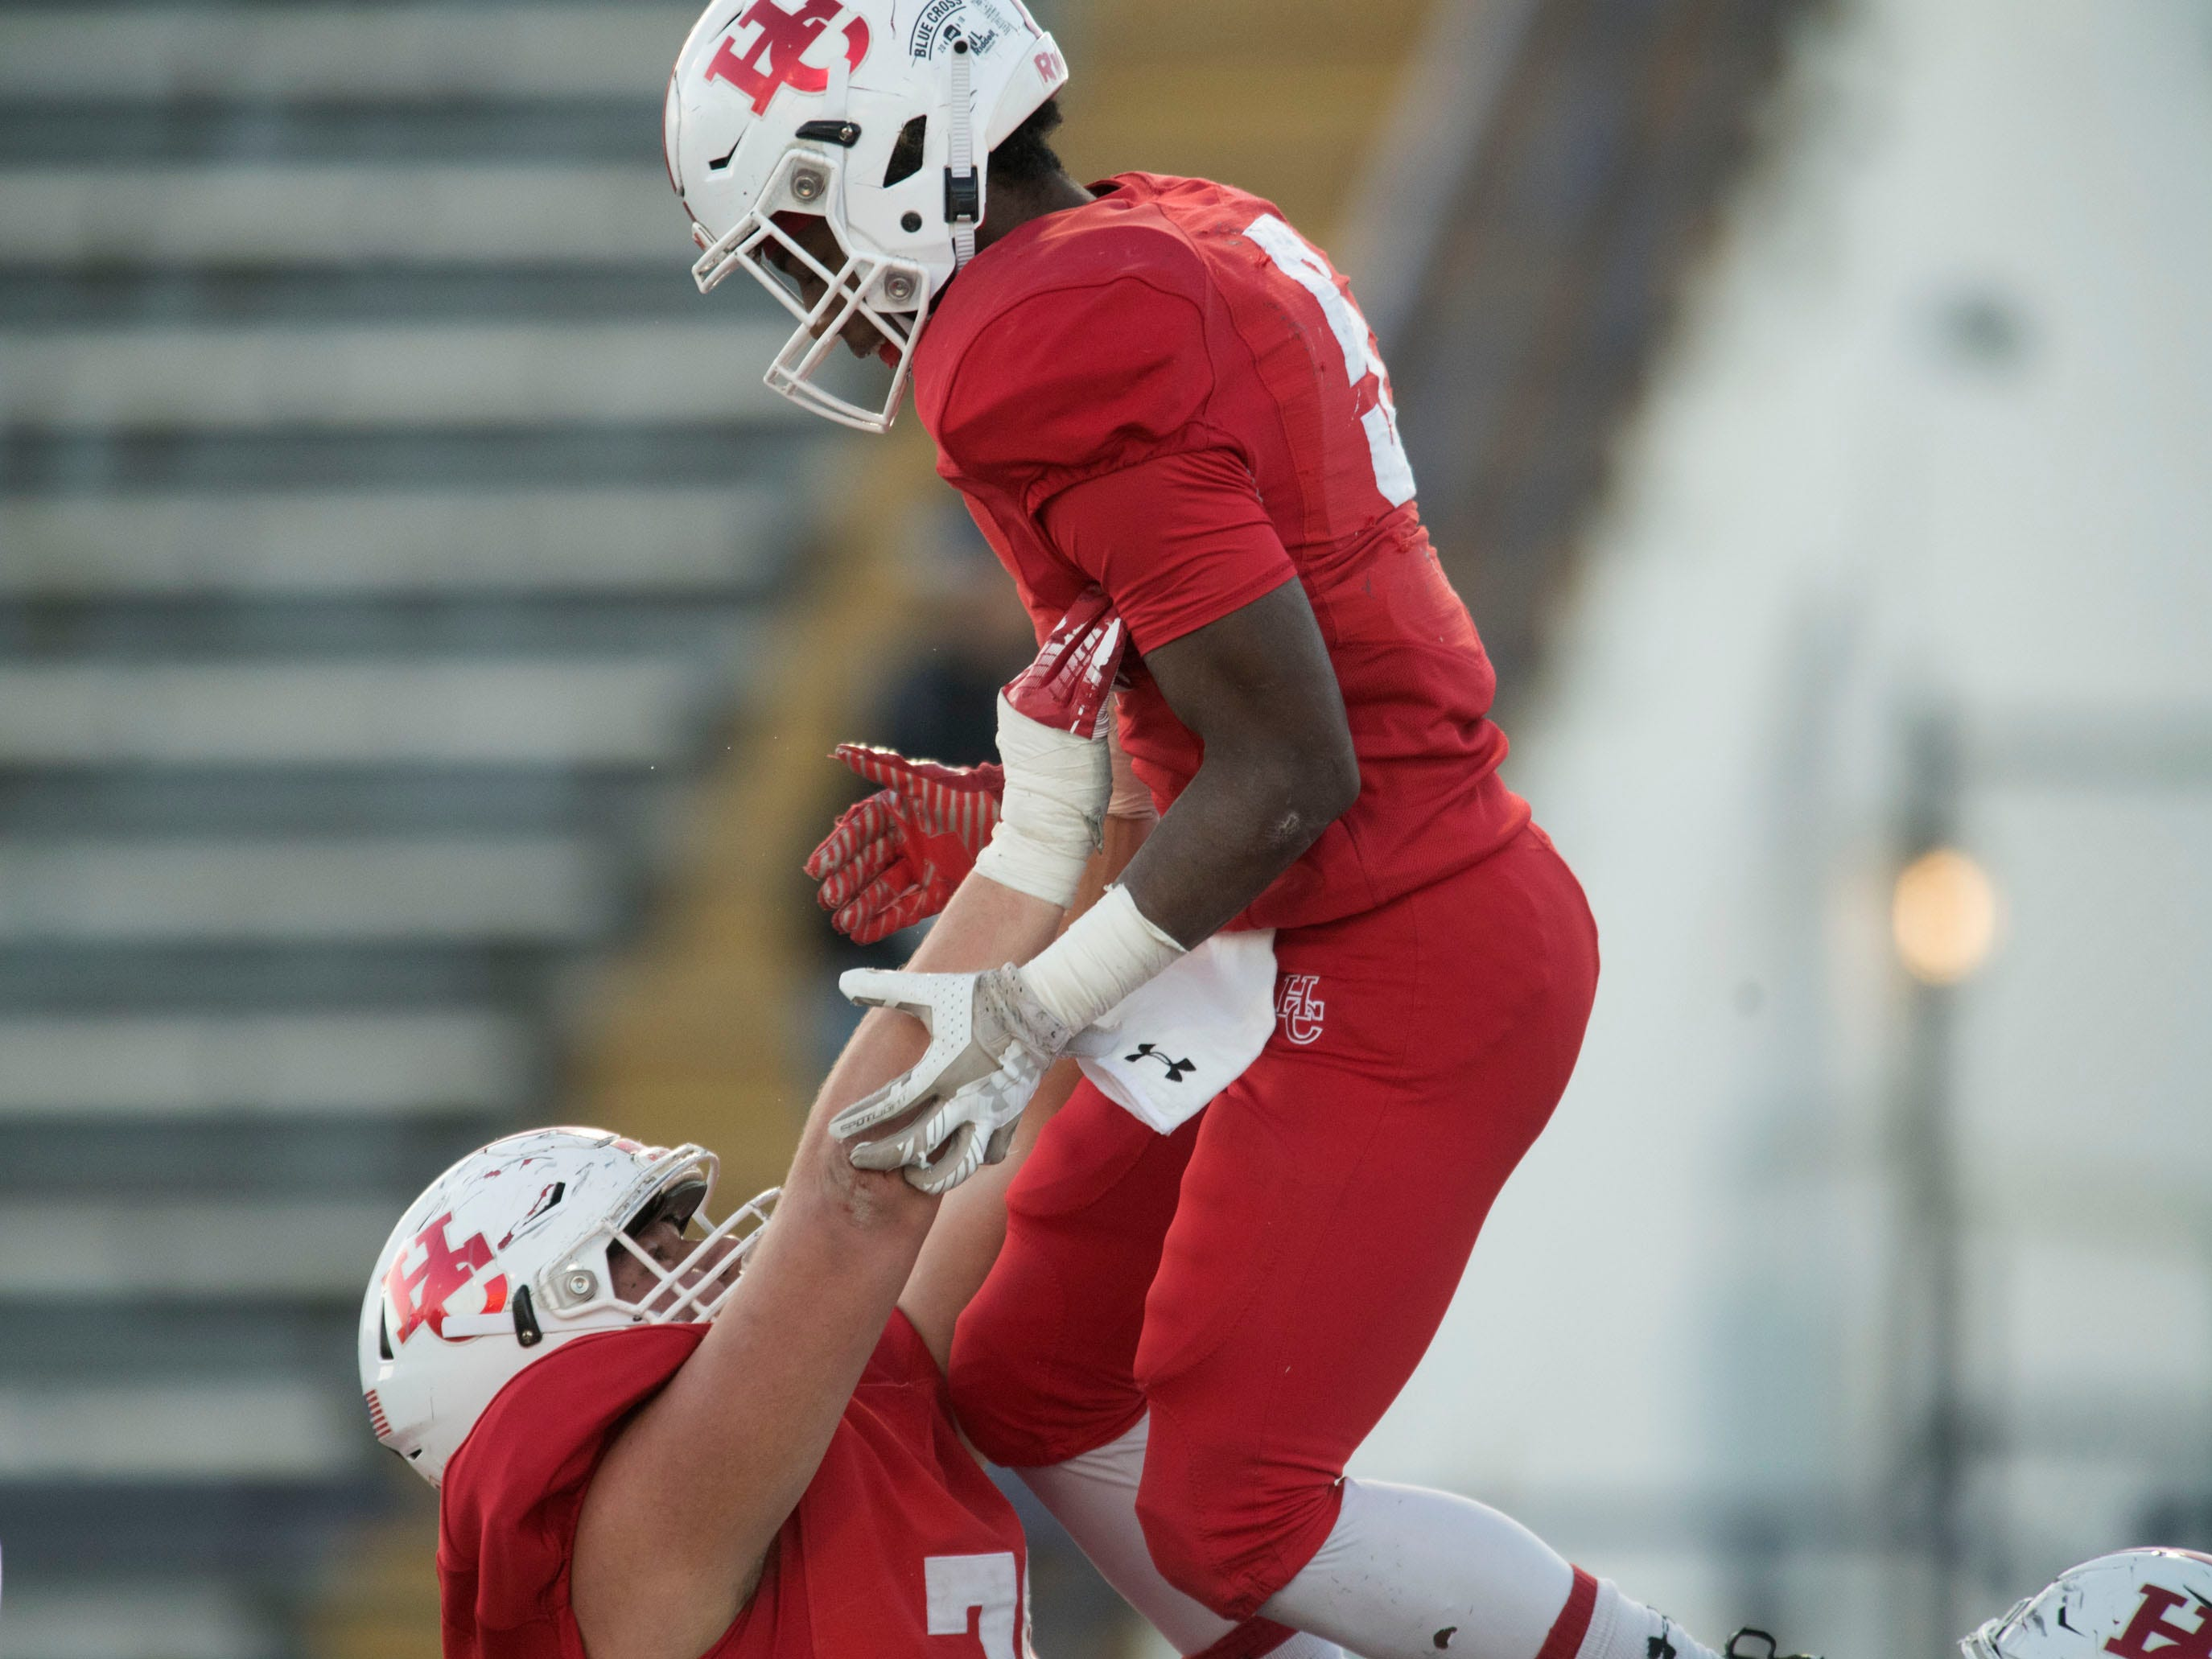 Henry County's Nick Metzinger (70) hoists Jaylon Foster (5)  in celebration of Foster's touchdown against Knoxville Central in the Class 5A BlueCross Bowl at Tucker Stadium on Sunday, December 2, 2018.